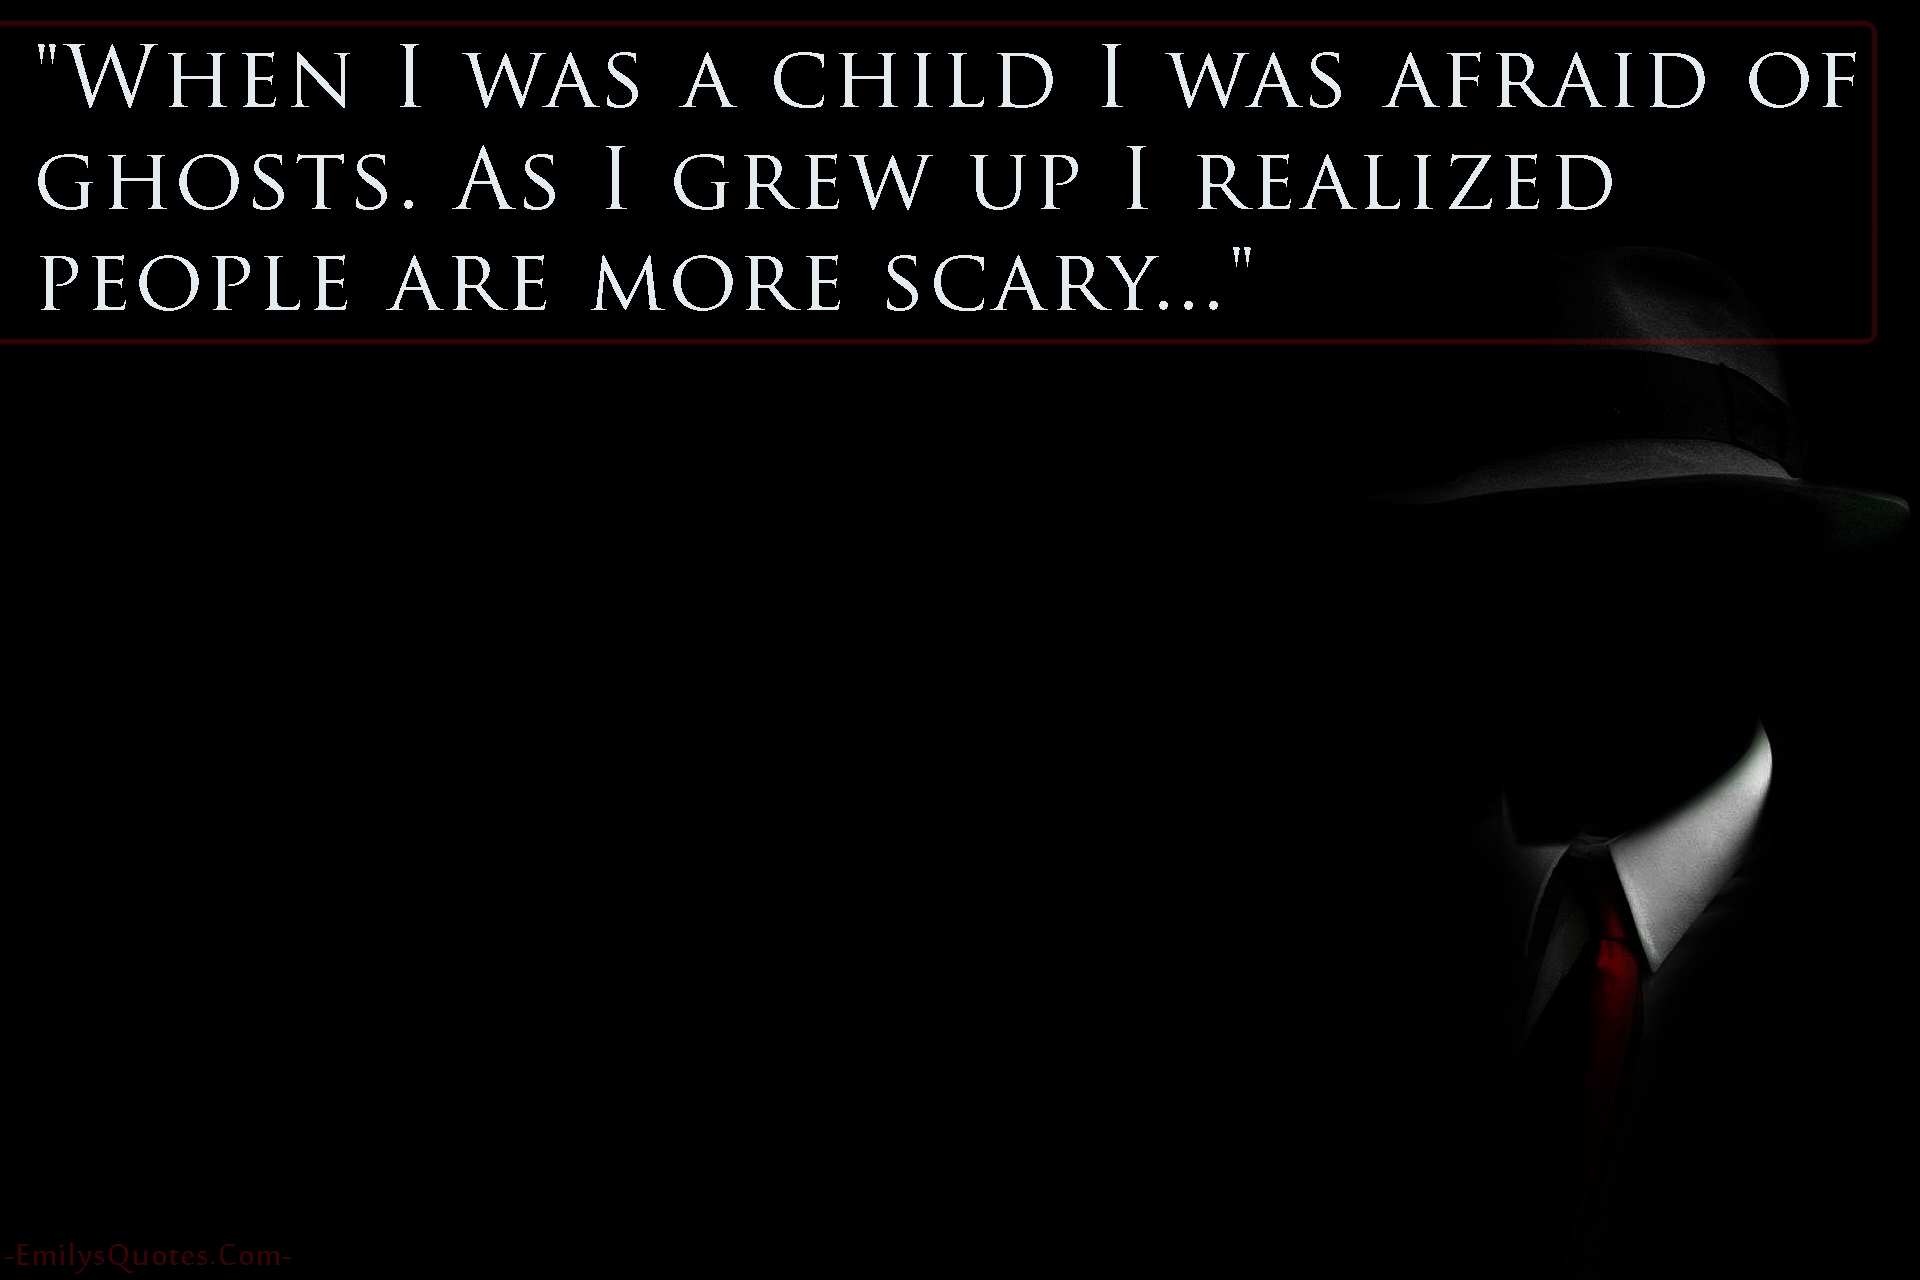 Fear Quotes When I Was A Child I Was Afraid Of Ghostsas I Grew Up I Realized